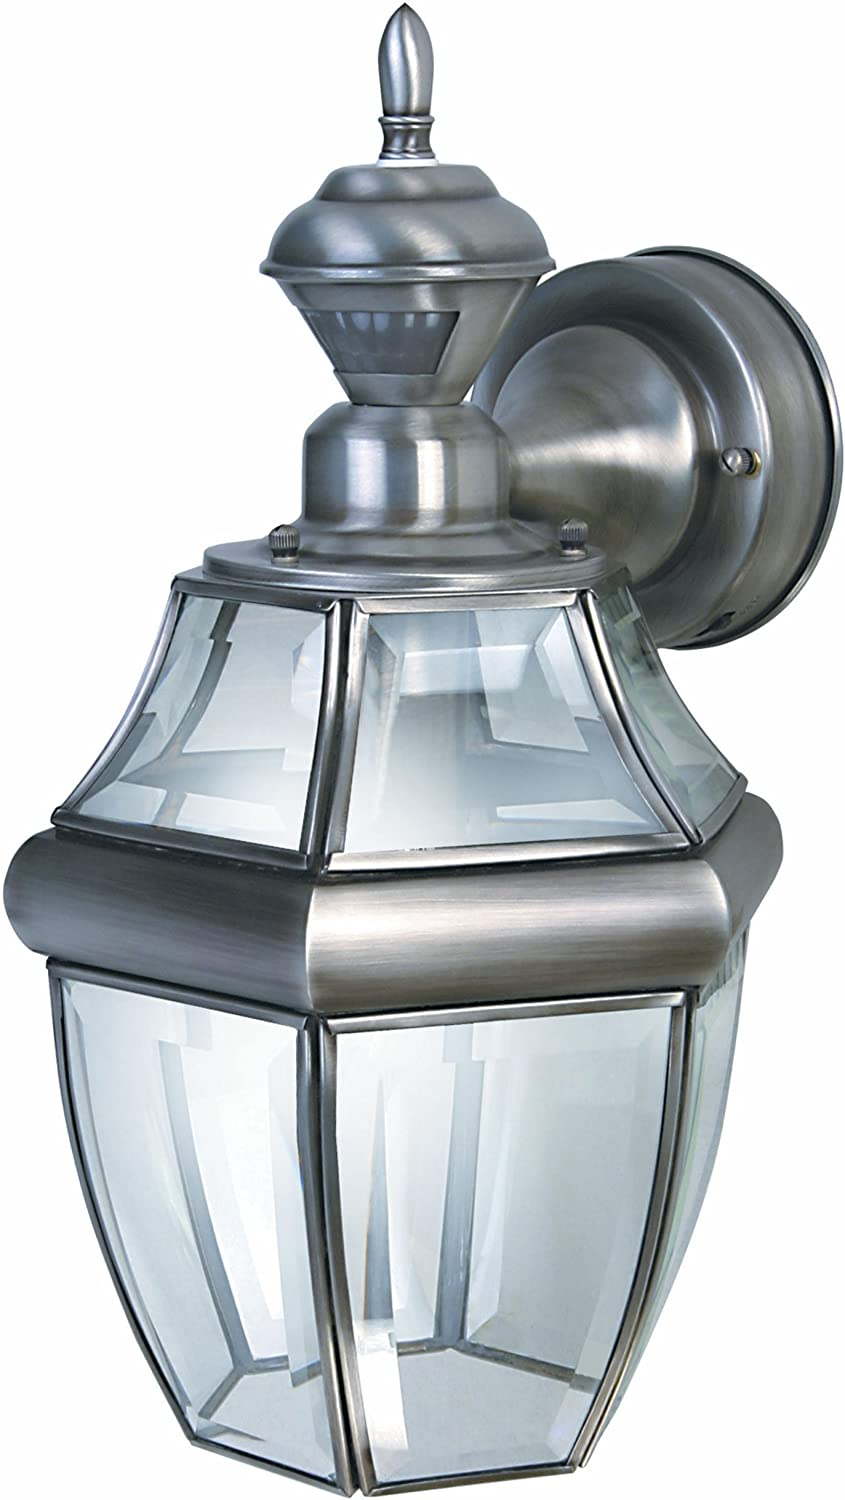 Polished B... Heath Zenith HZ-4170-PB Motion-Activated Six-Sided Carriage Light